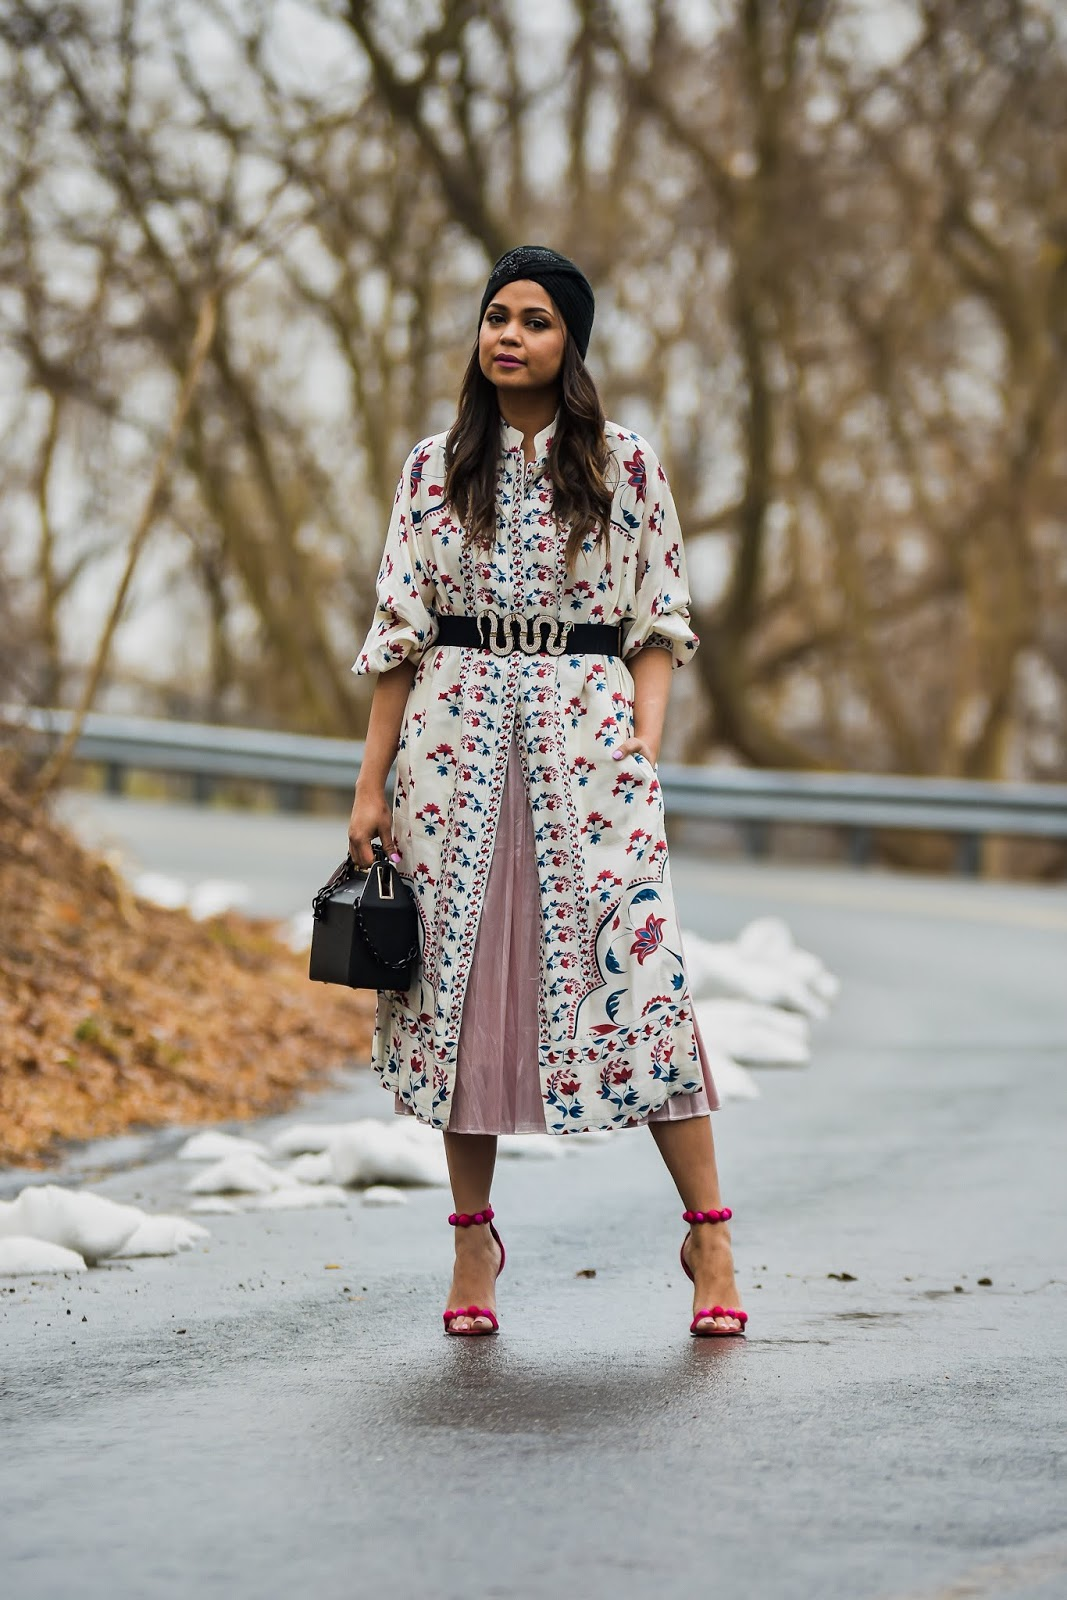 metallic pink skirt, shirtdress, outfit idea, oot, DC blogger, Fashion, style, turban hat, skirtv with dress outfit, saumya shiohare, myriad musings